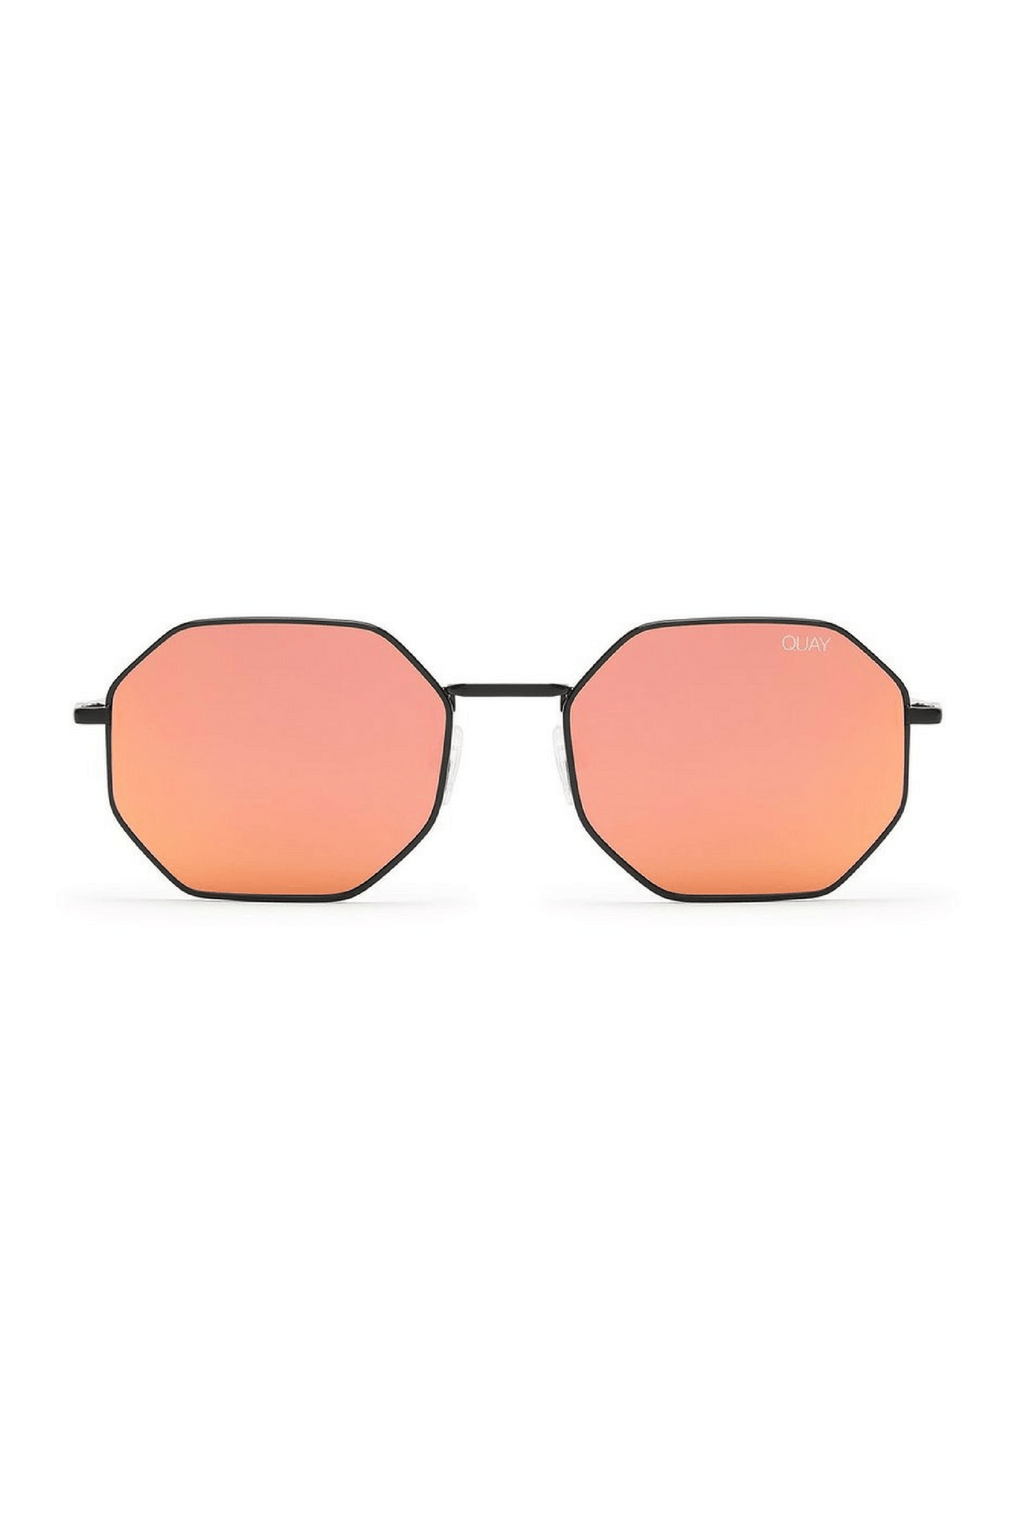 On A Dime Sunglasses in Black/Red Mirror - QUAY AUSTRALIA